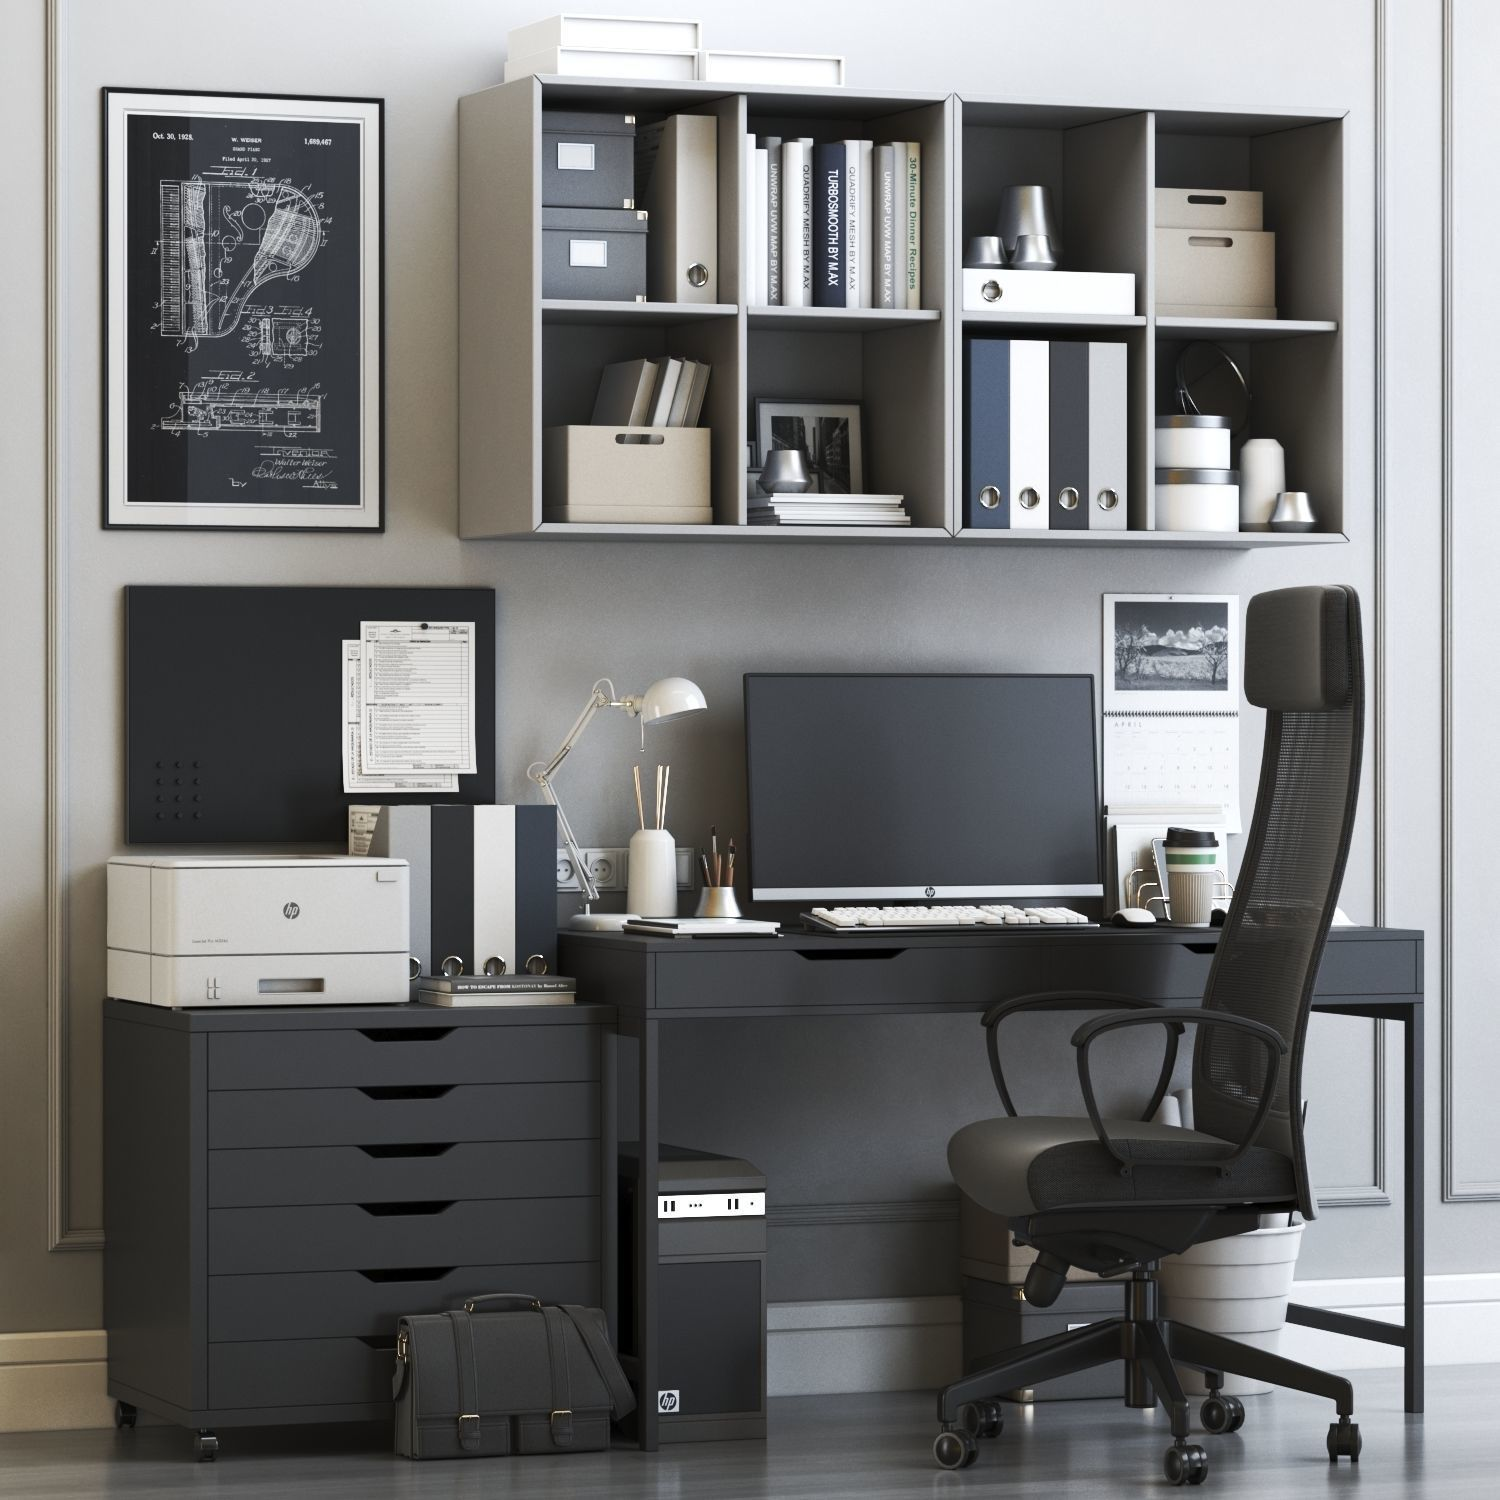 Office workplace 7